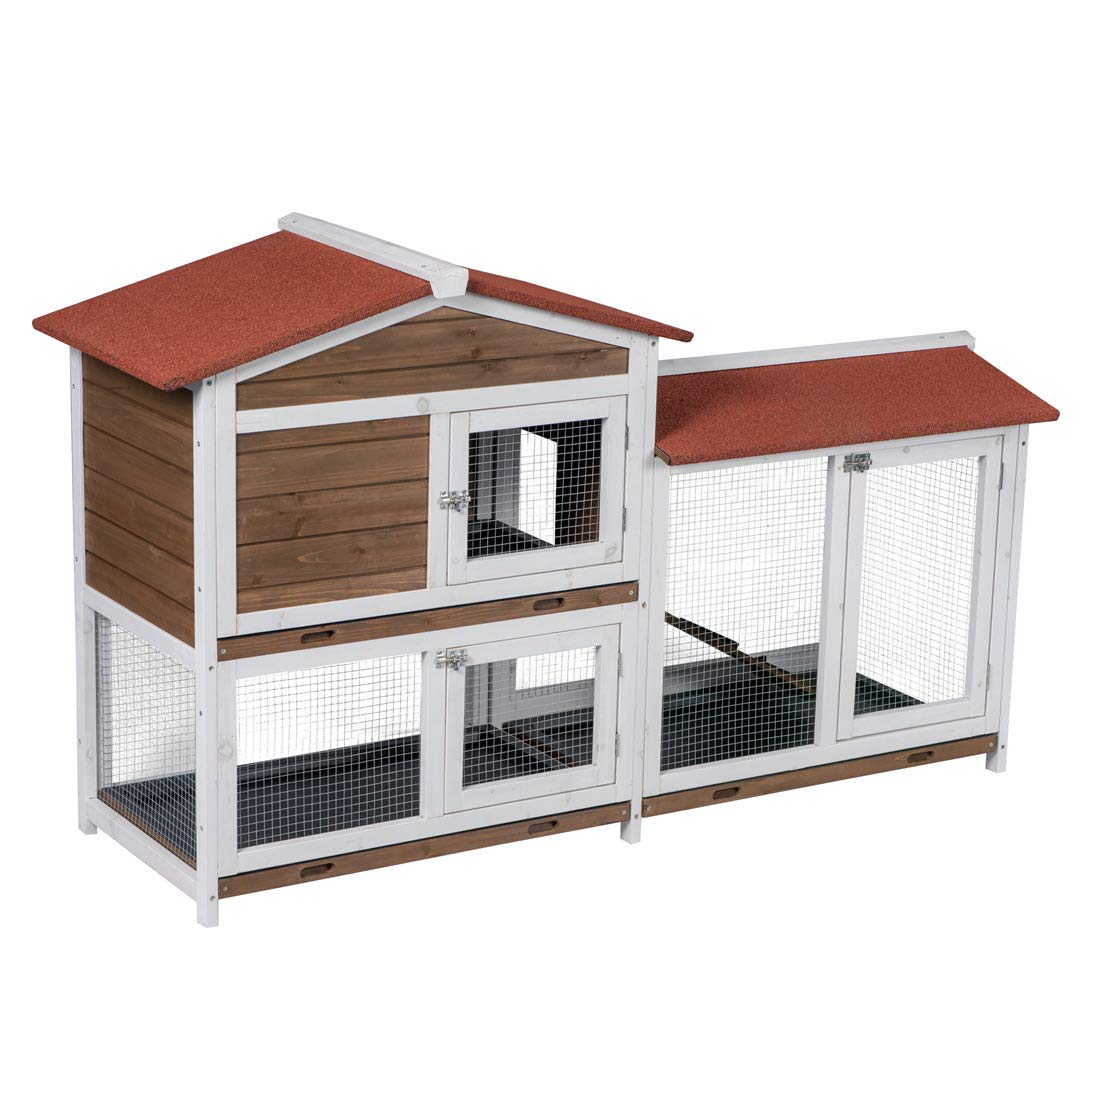 Good Life Two Floors Wooden Outdoor Indoor Roof Waterproof Bunny Hutch Rabbit Cage Guinea Pig Coop PET House for Small to Middle Animals with Stairs and 3 Cleaning Tray by GOOD LIFE USA (Image #2)